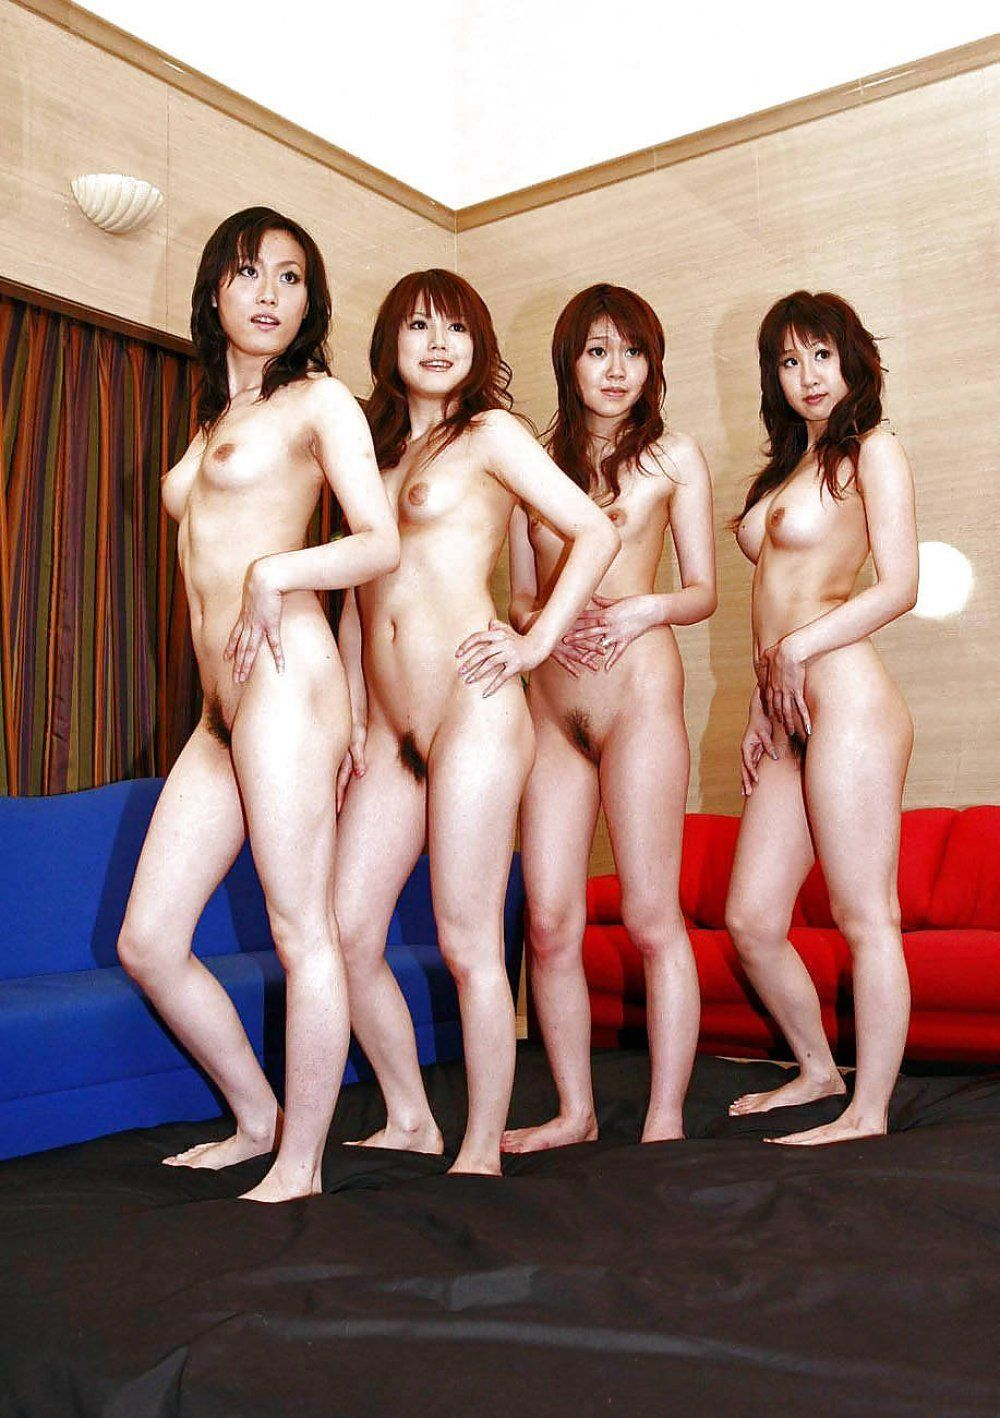 Apologise, but, band nude asian girl consider, that you